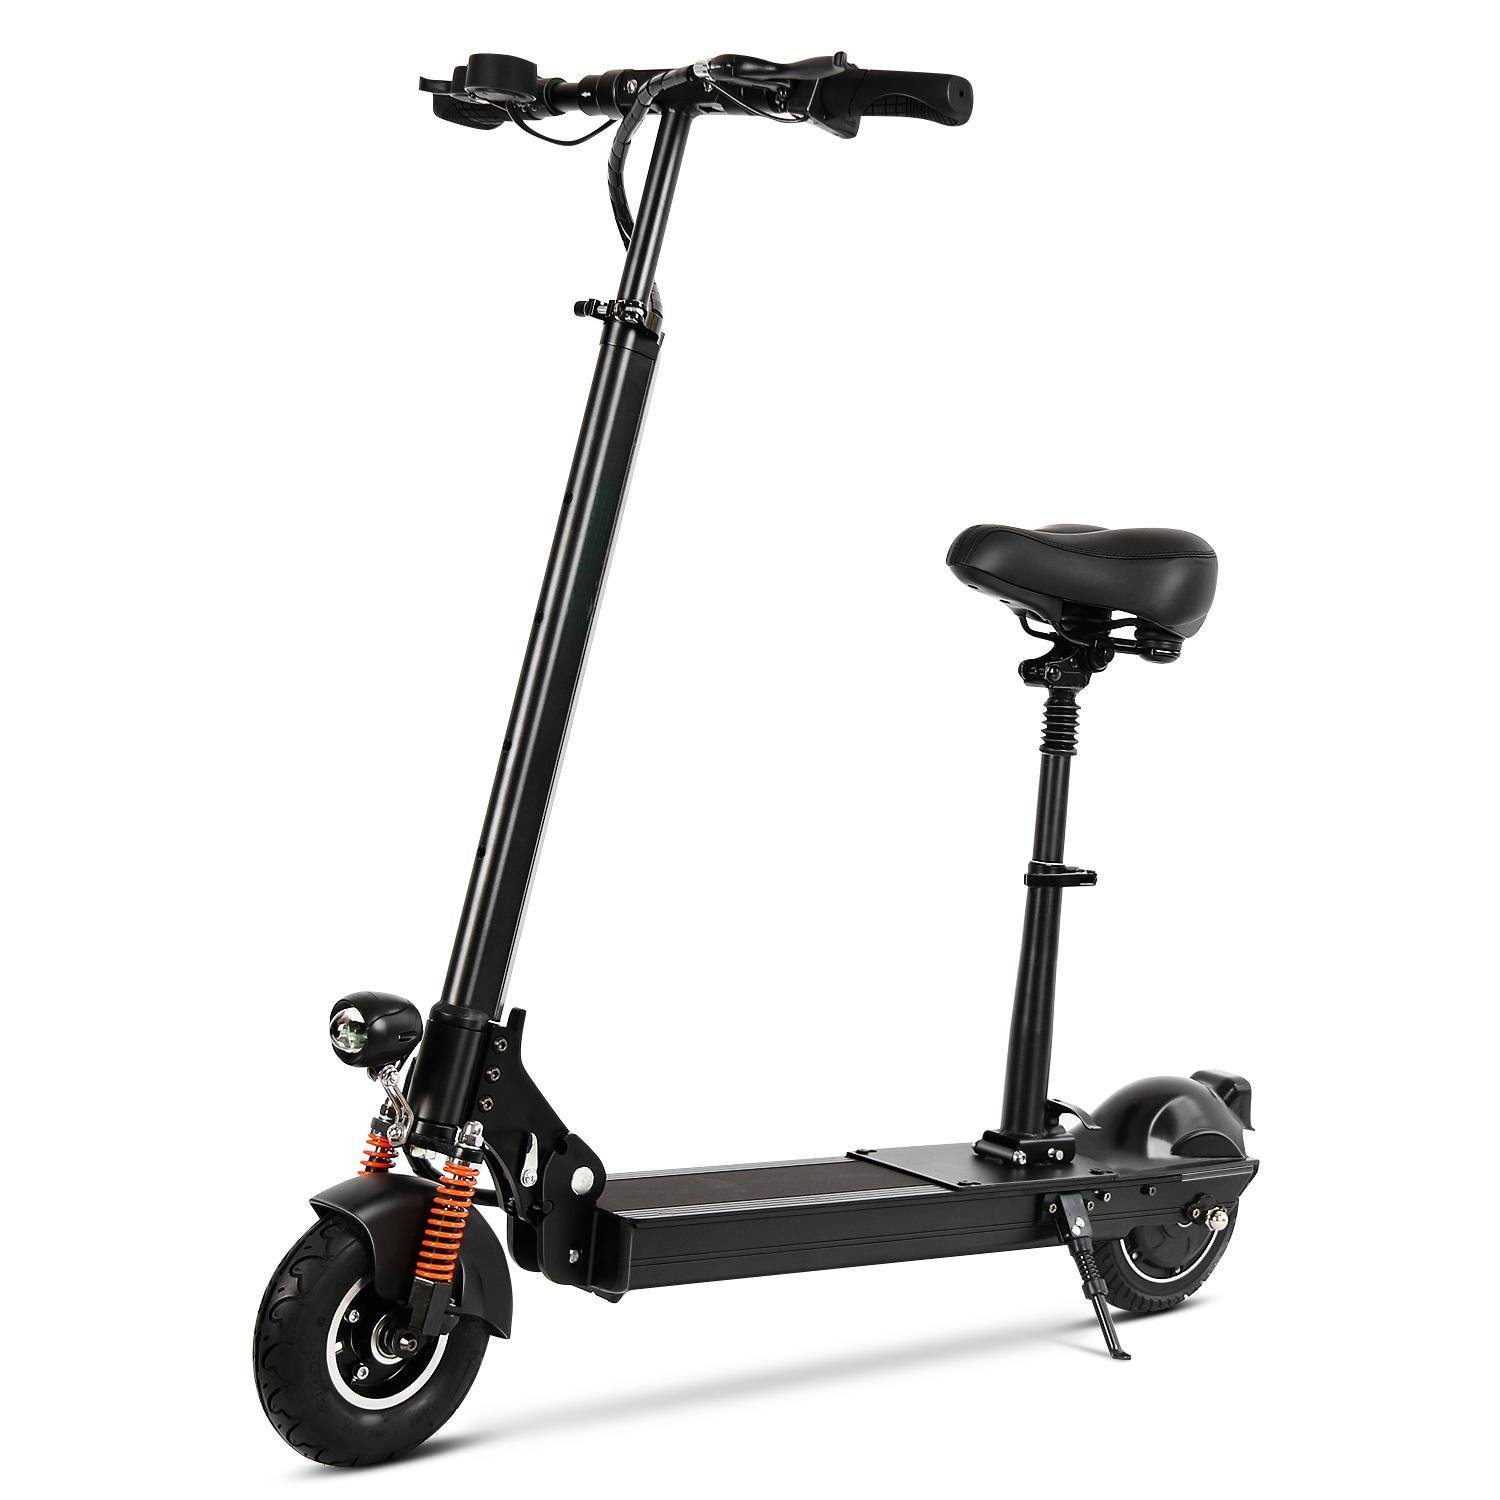 Bifast Portable Seated Electric Bike Adult Motorized Scooter with Rechargeable Battery Black